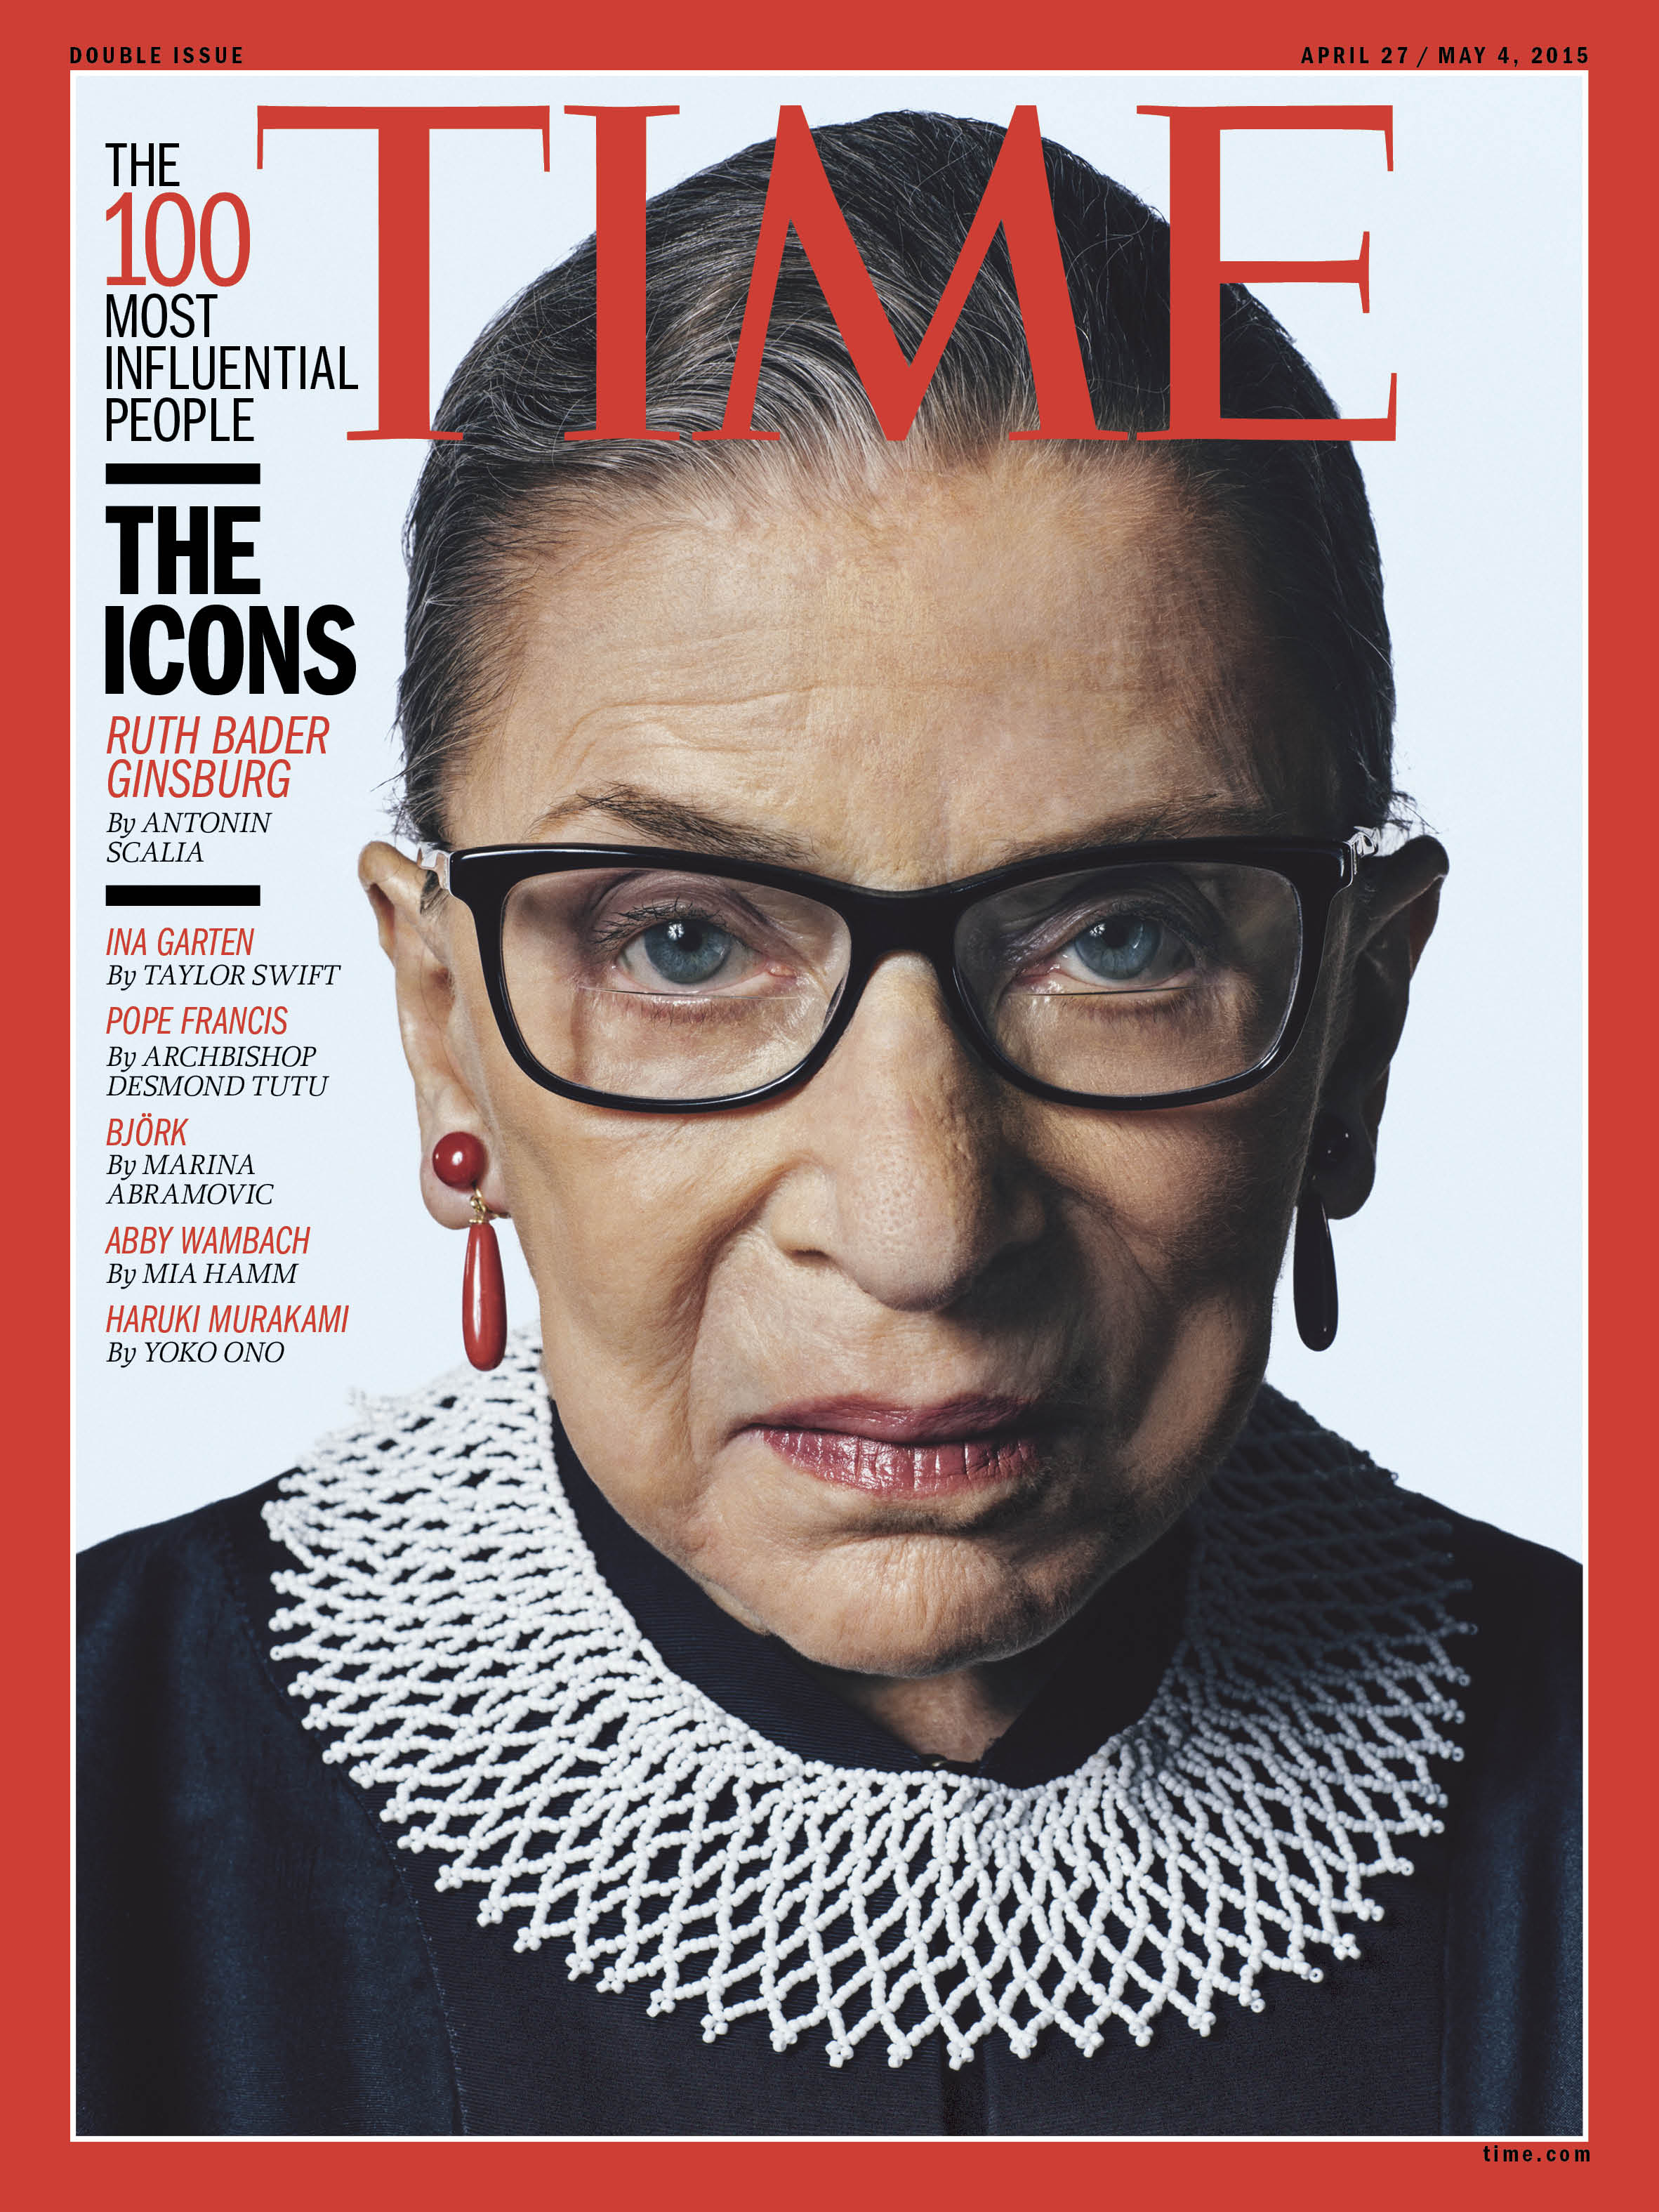 Antonin Scalia on Ruth Bader Ginsburg:   I can attest that her opinions are always thoroughly considered, always carefully crafted and almost always correct (which is to say we sometimes disagree).